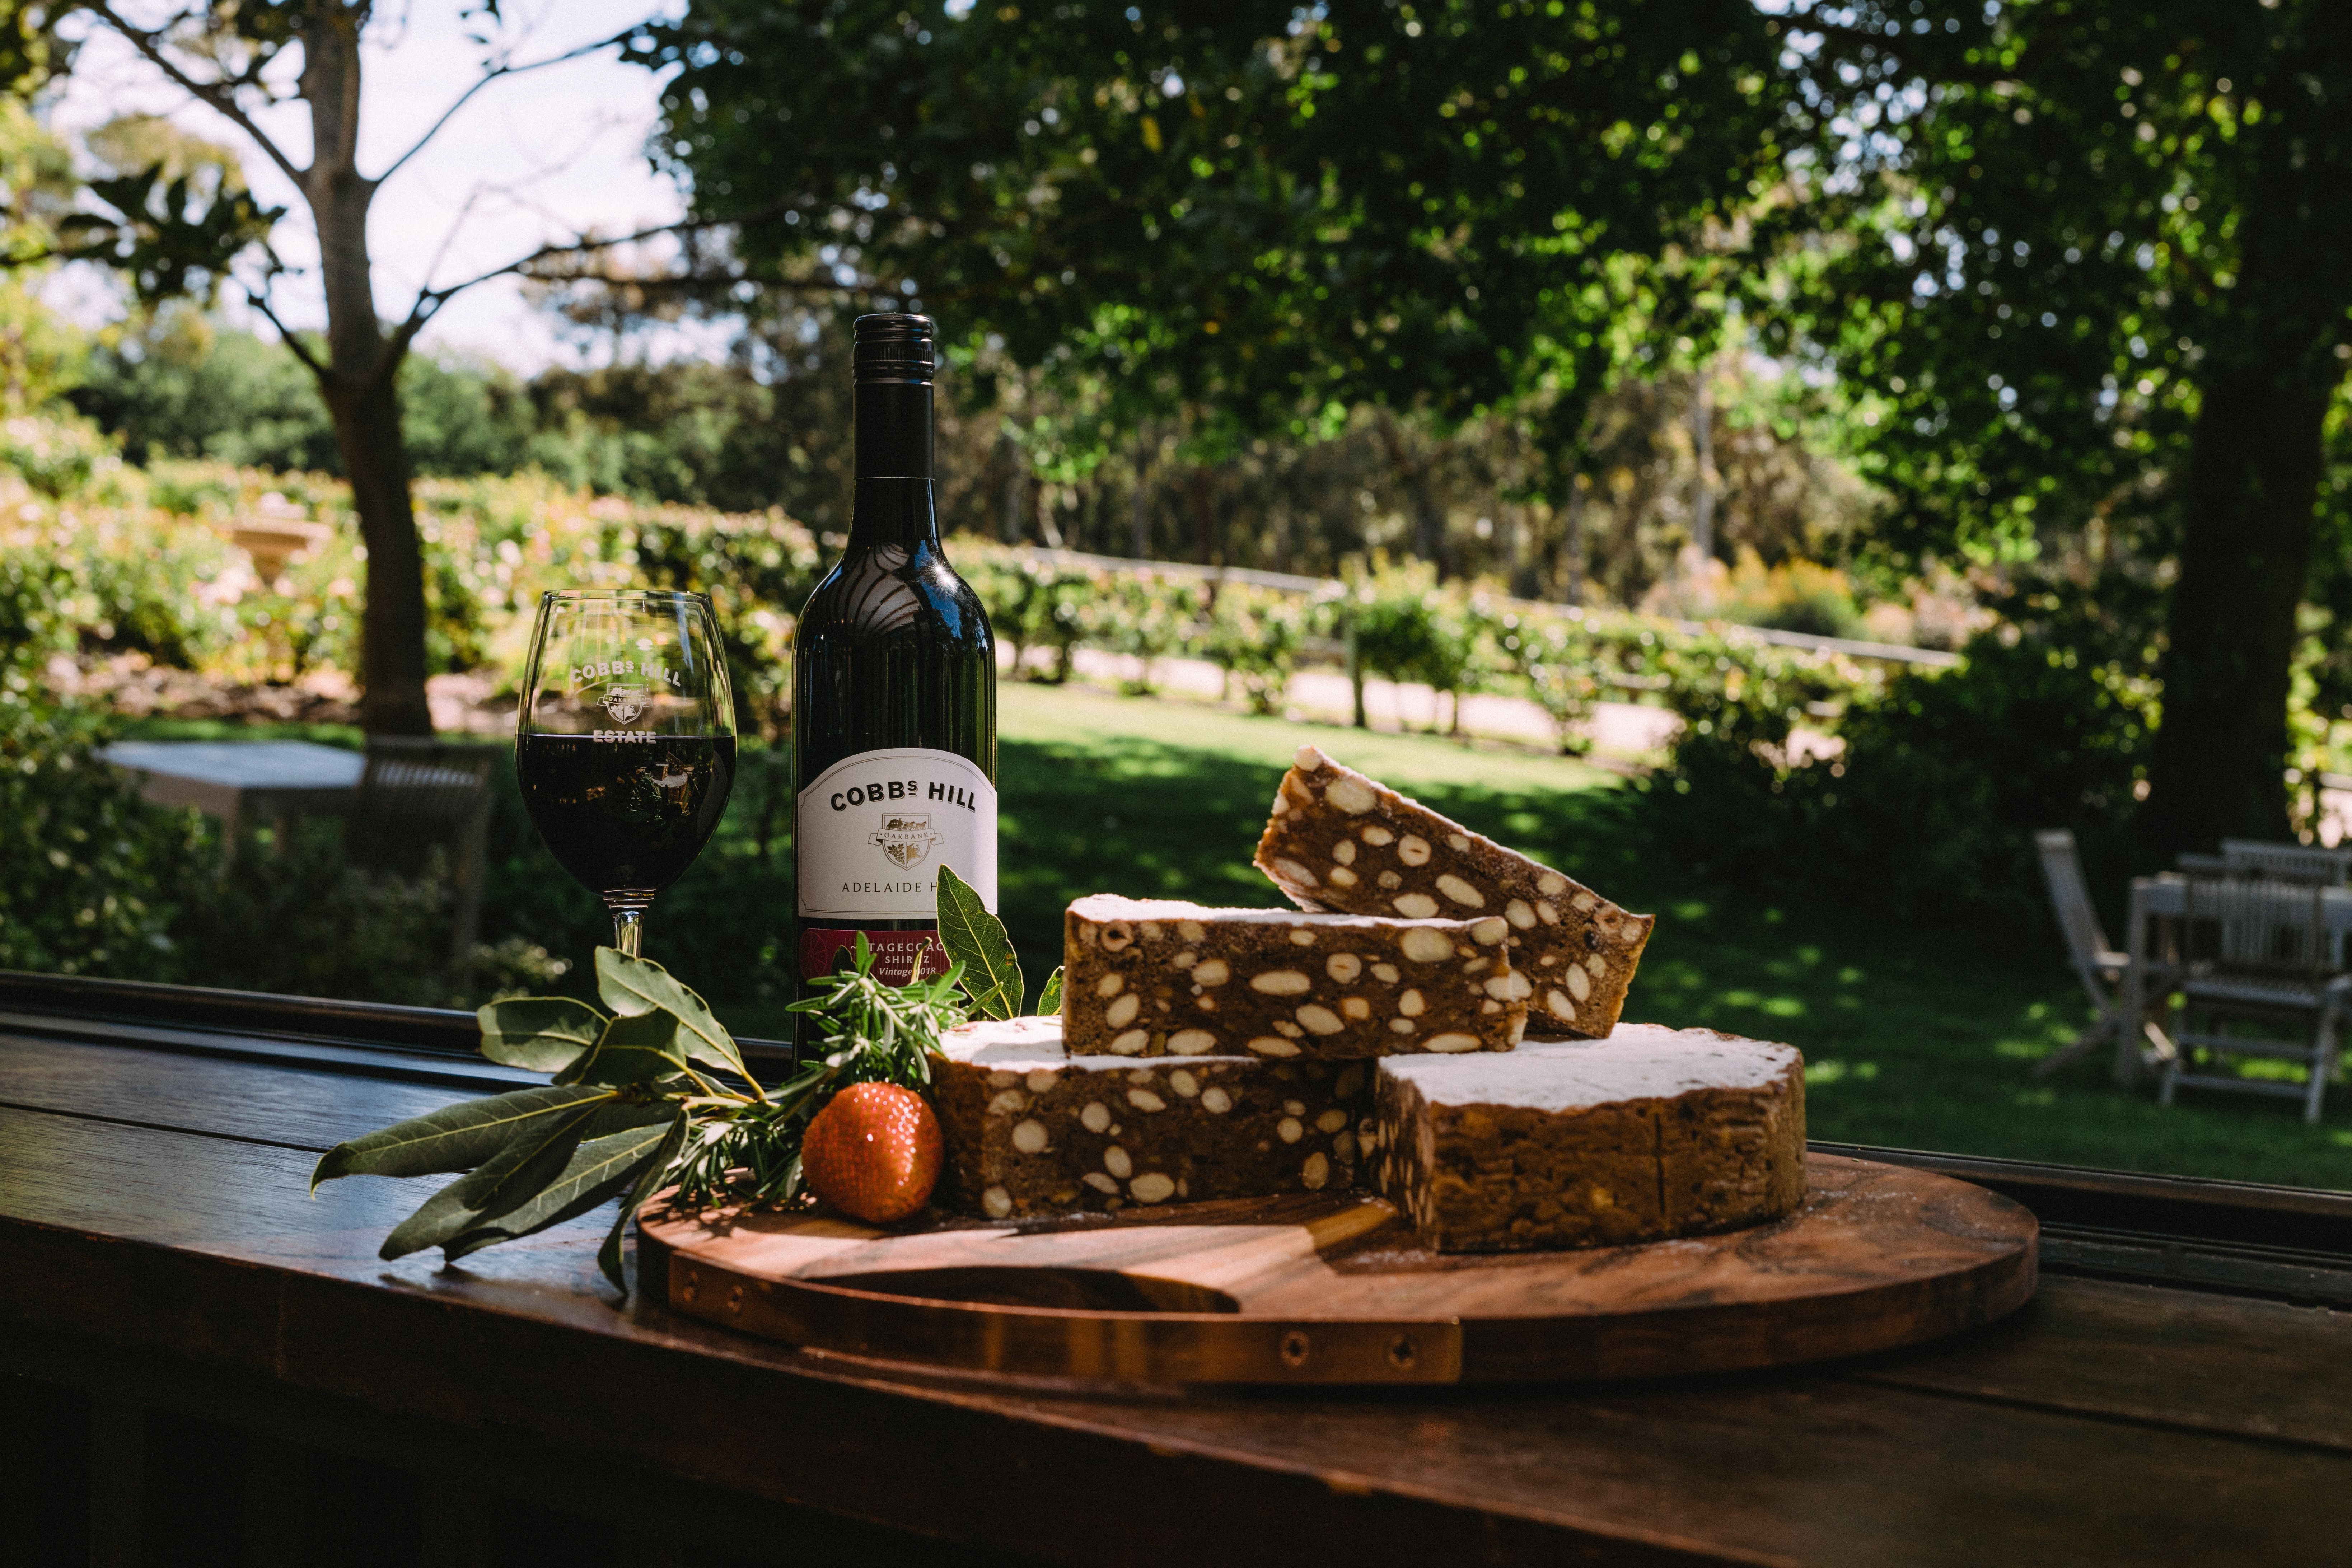 Made from a blend of candied citrus peels, almonds, hazelnut, honey, spice flavours of cloves , cinnamon and pepper. Baylies Siena cake is perfect to be served with your favourite wine and cheese.